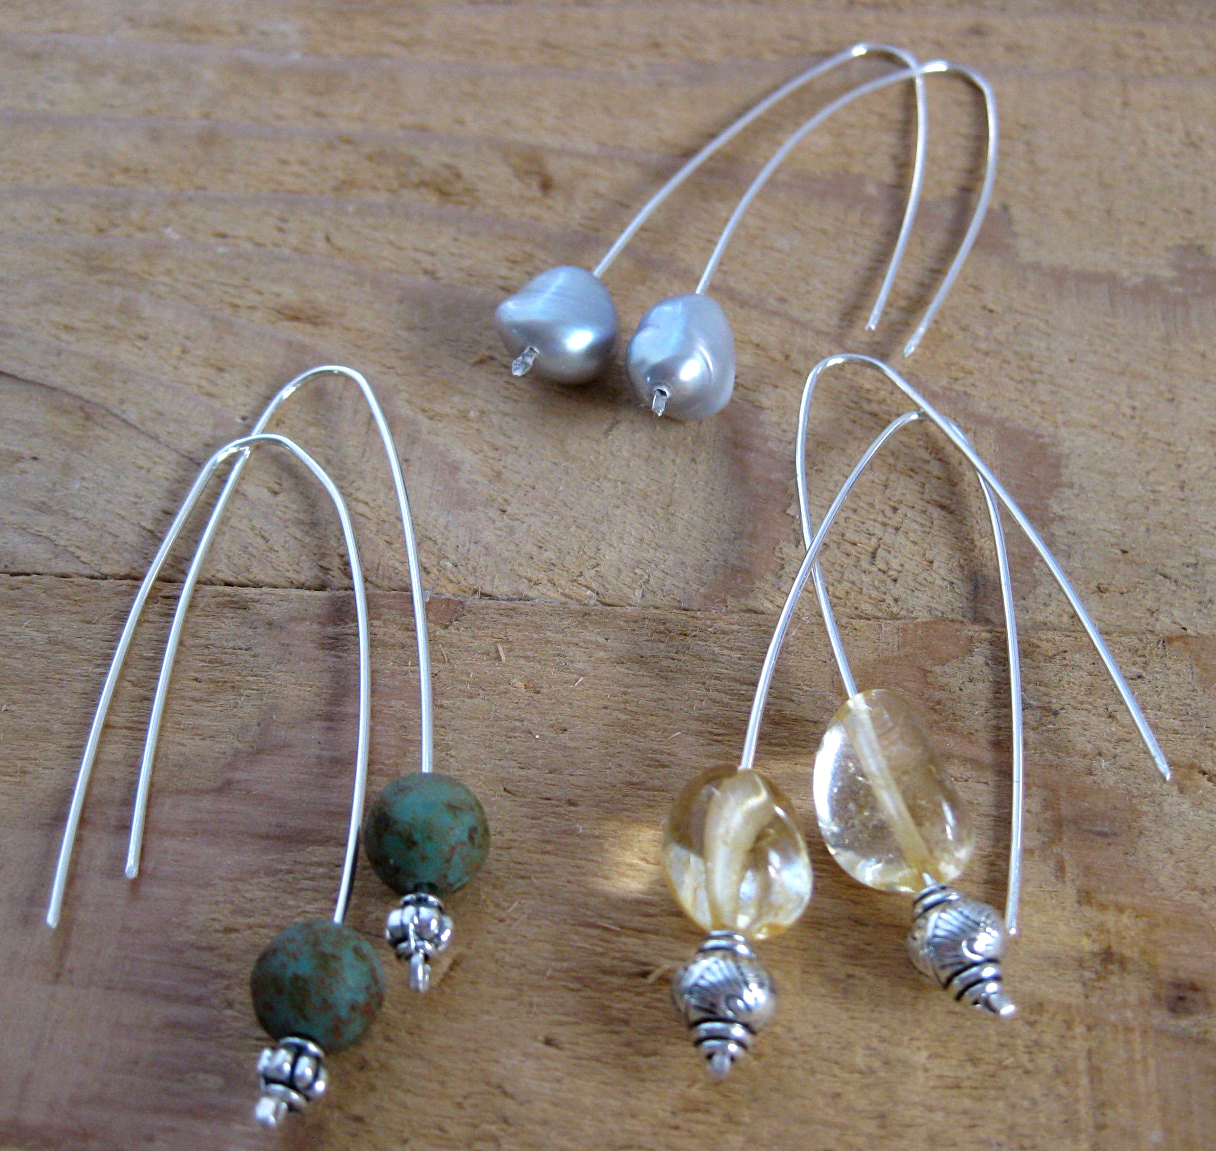 Sterling Silver Ear Wires with Freshwater Pearls, Citrine or Ceramic Beads